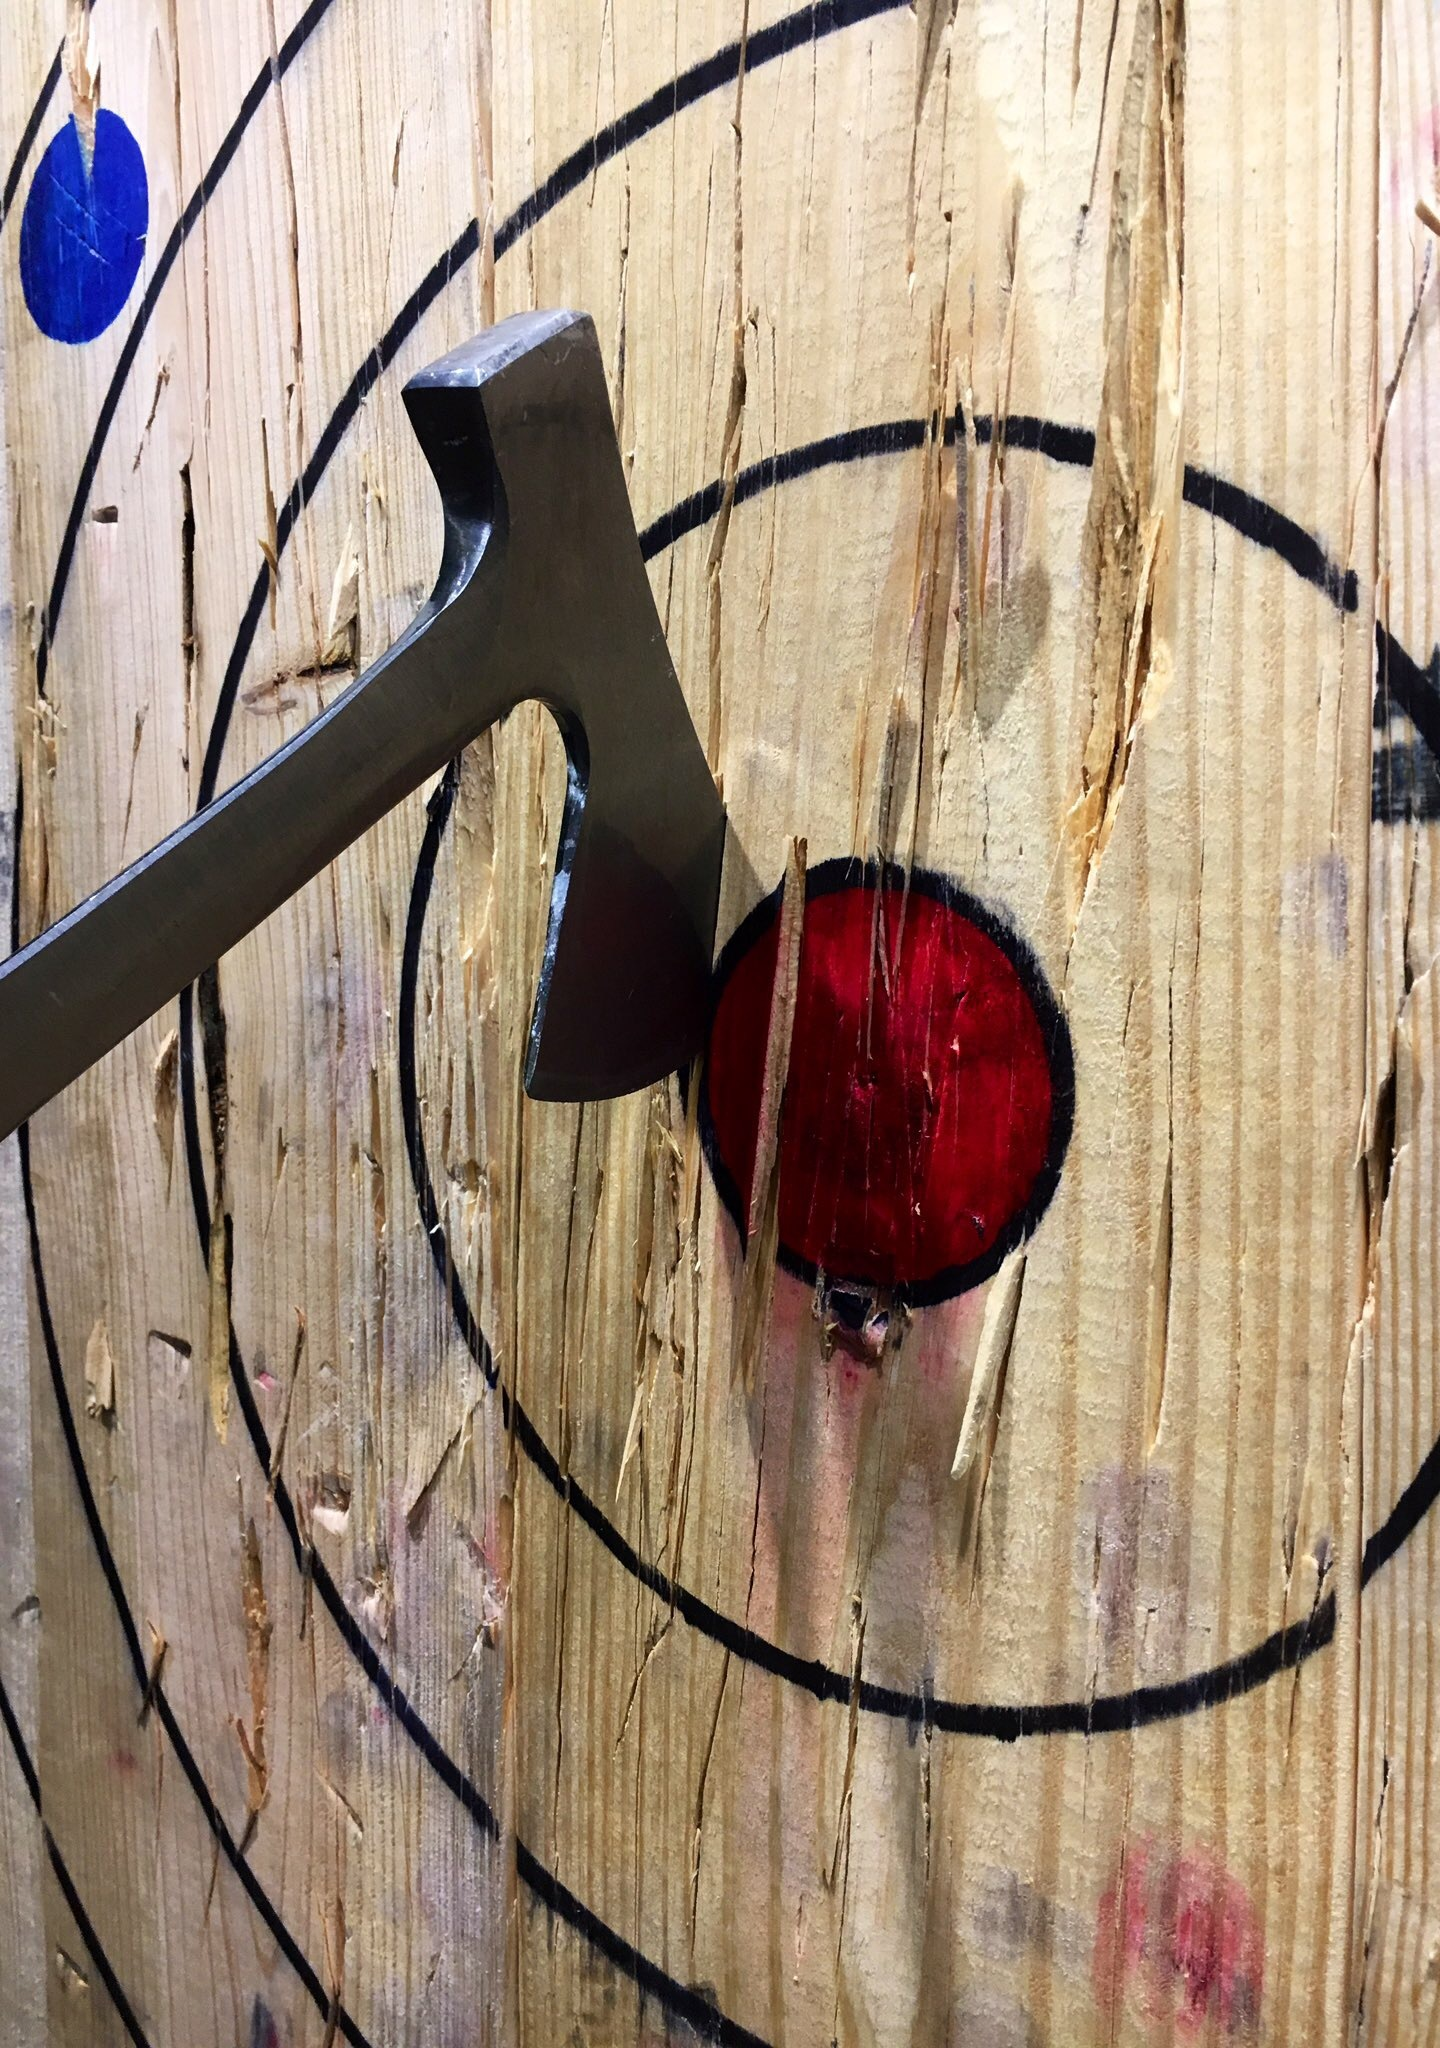 axe throwing_1547216551787.JPG.jpg